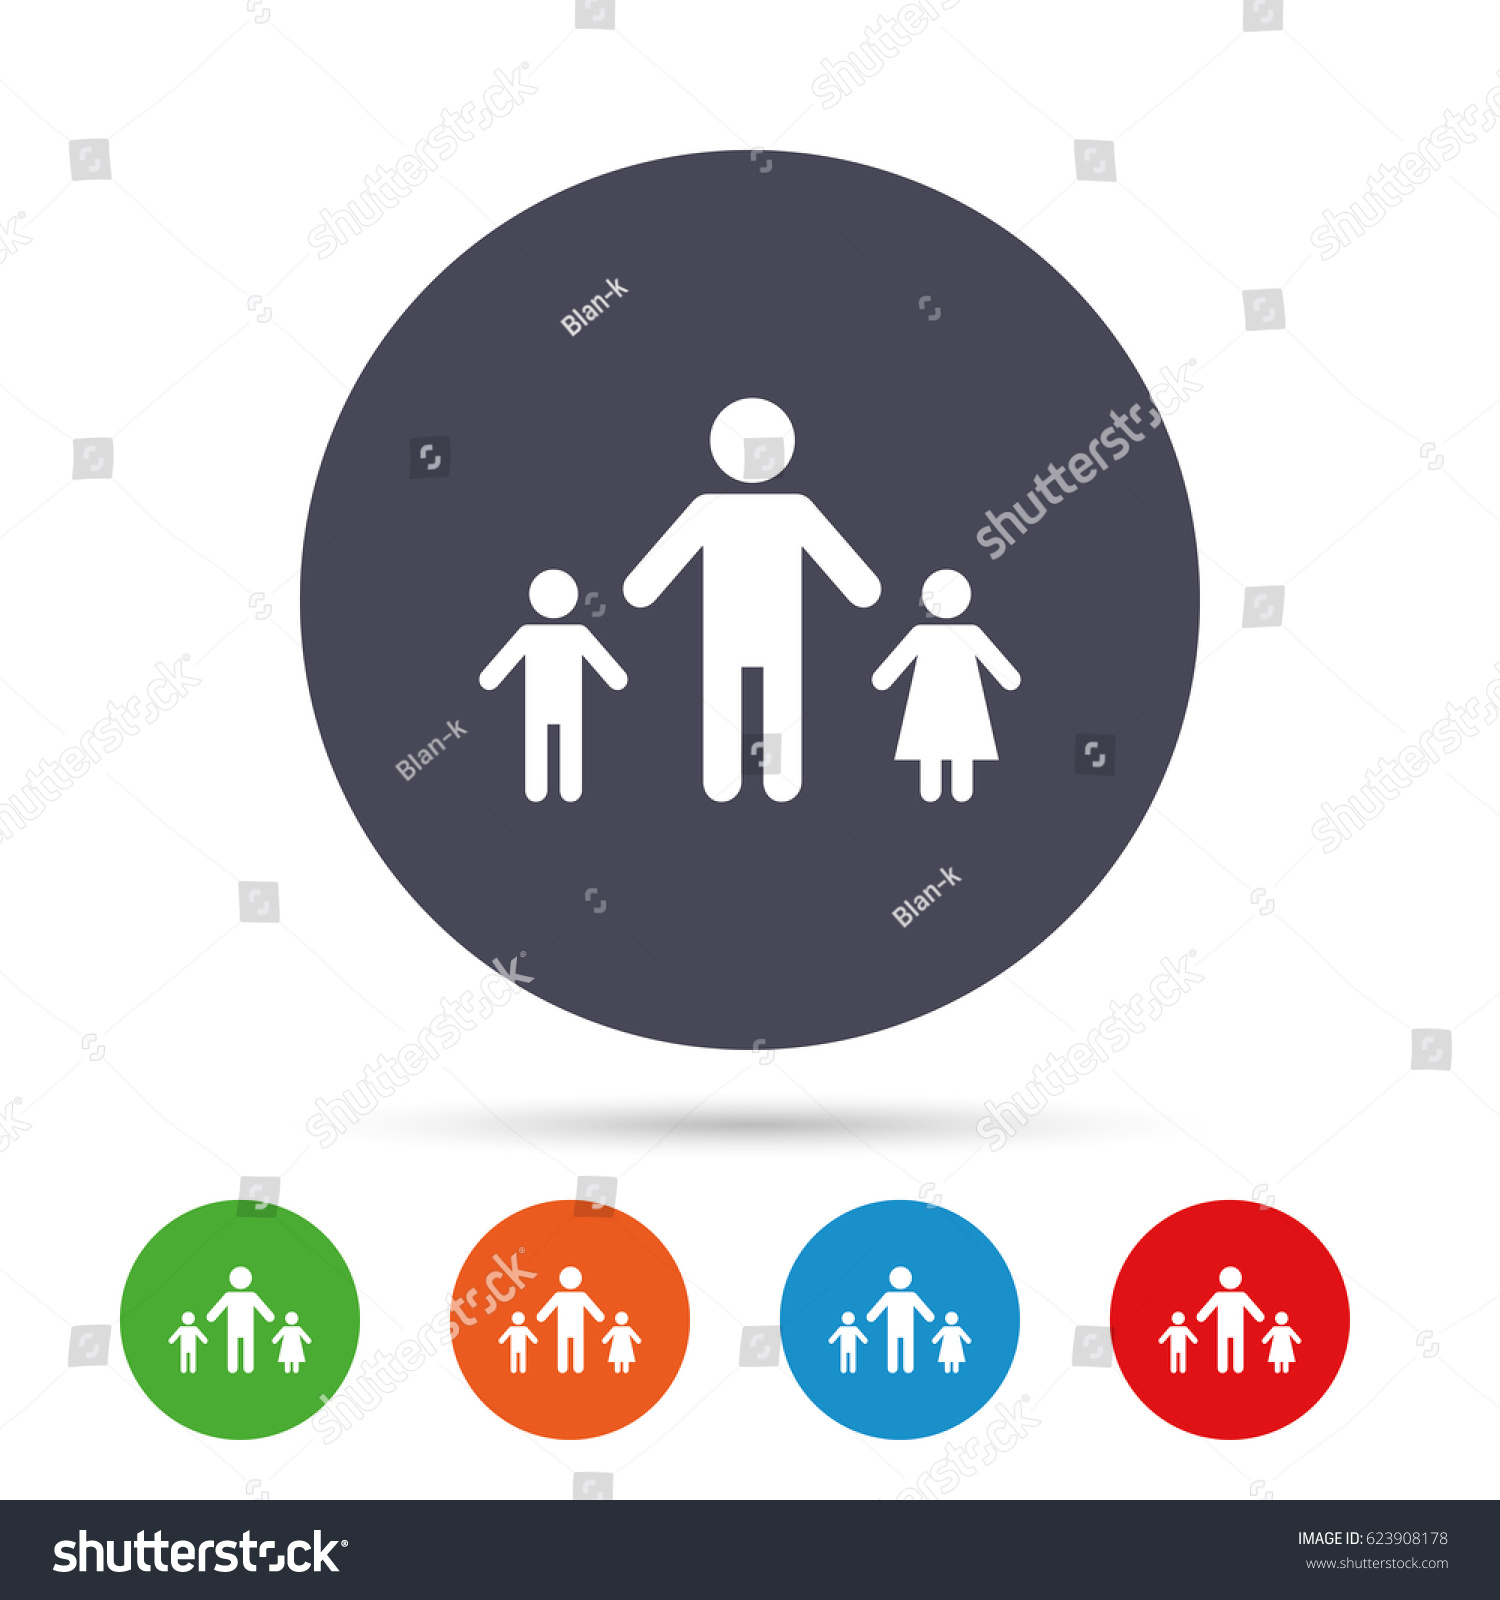 Oneparent family two children sign icon stock vector 623908178 one parent family with two children sign icon father with son and daughter symbol biocorpaavc